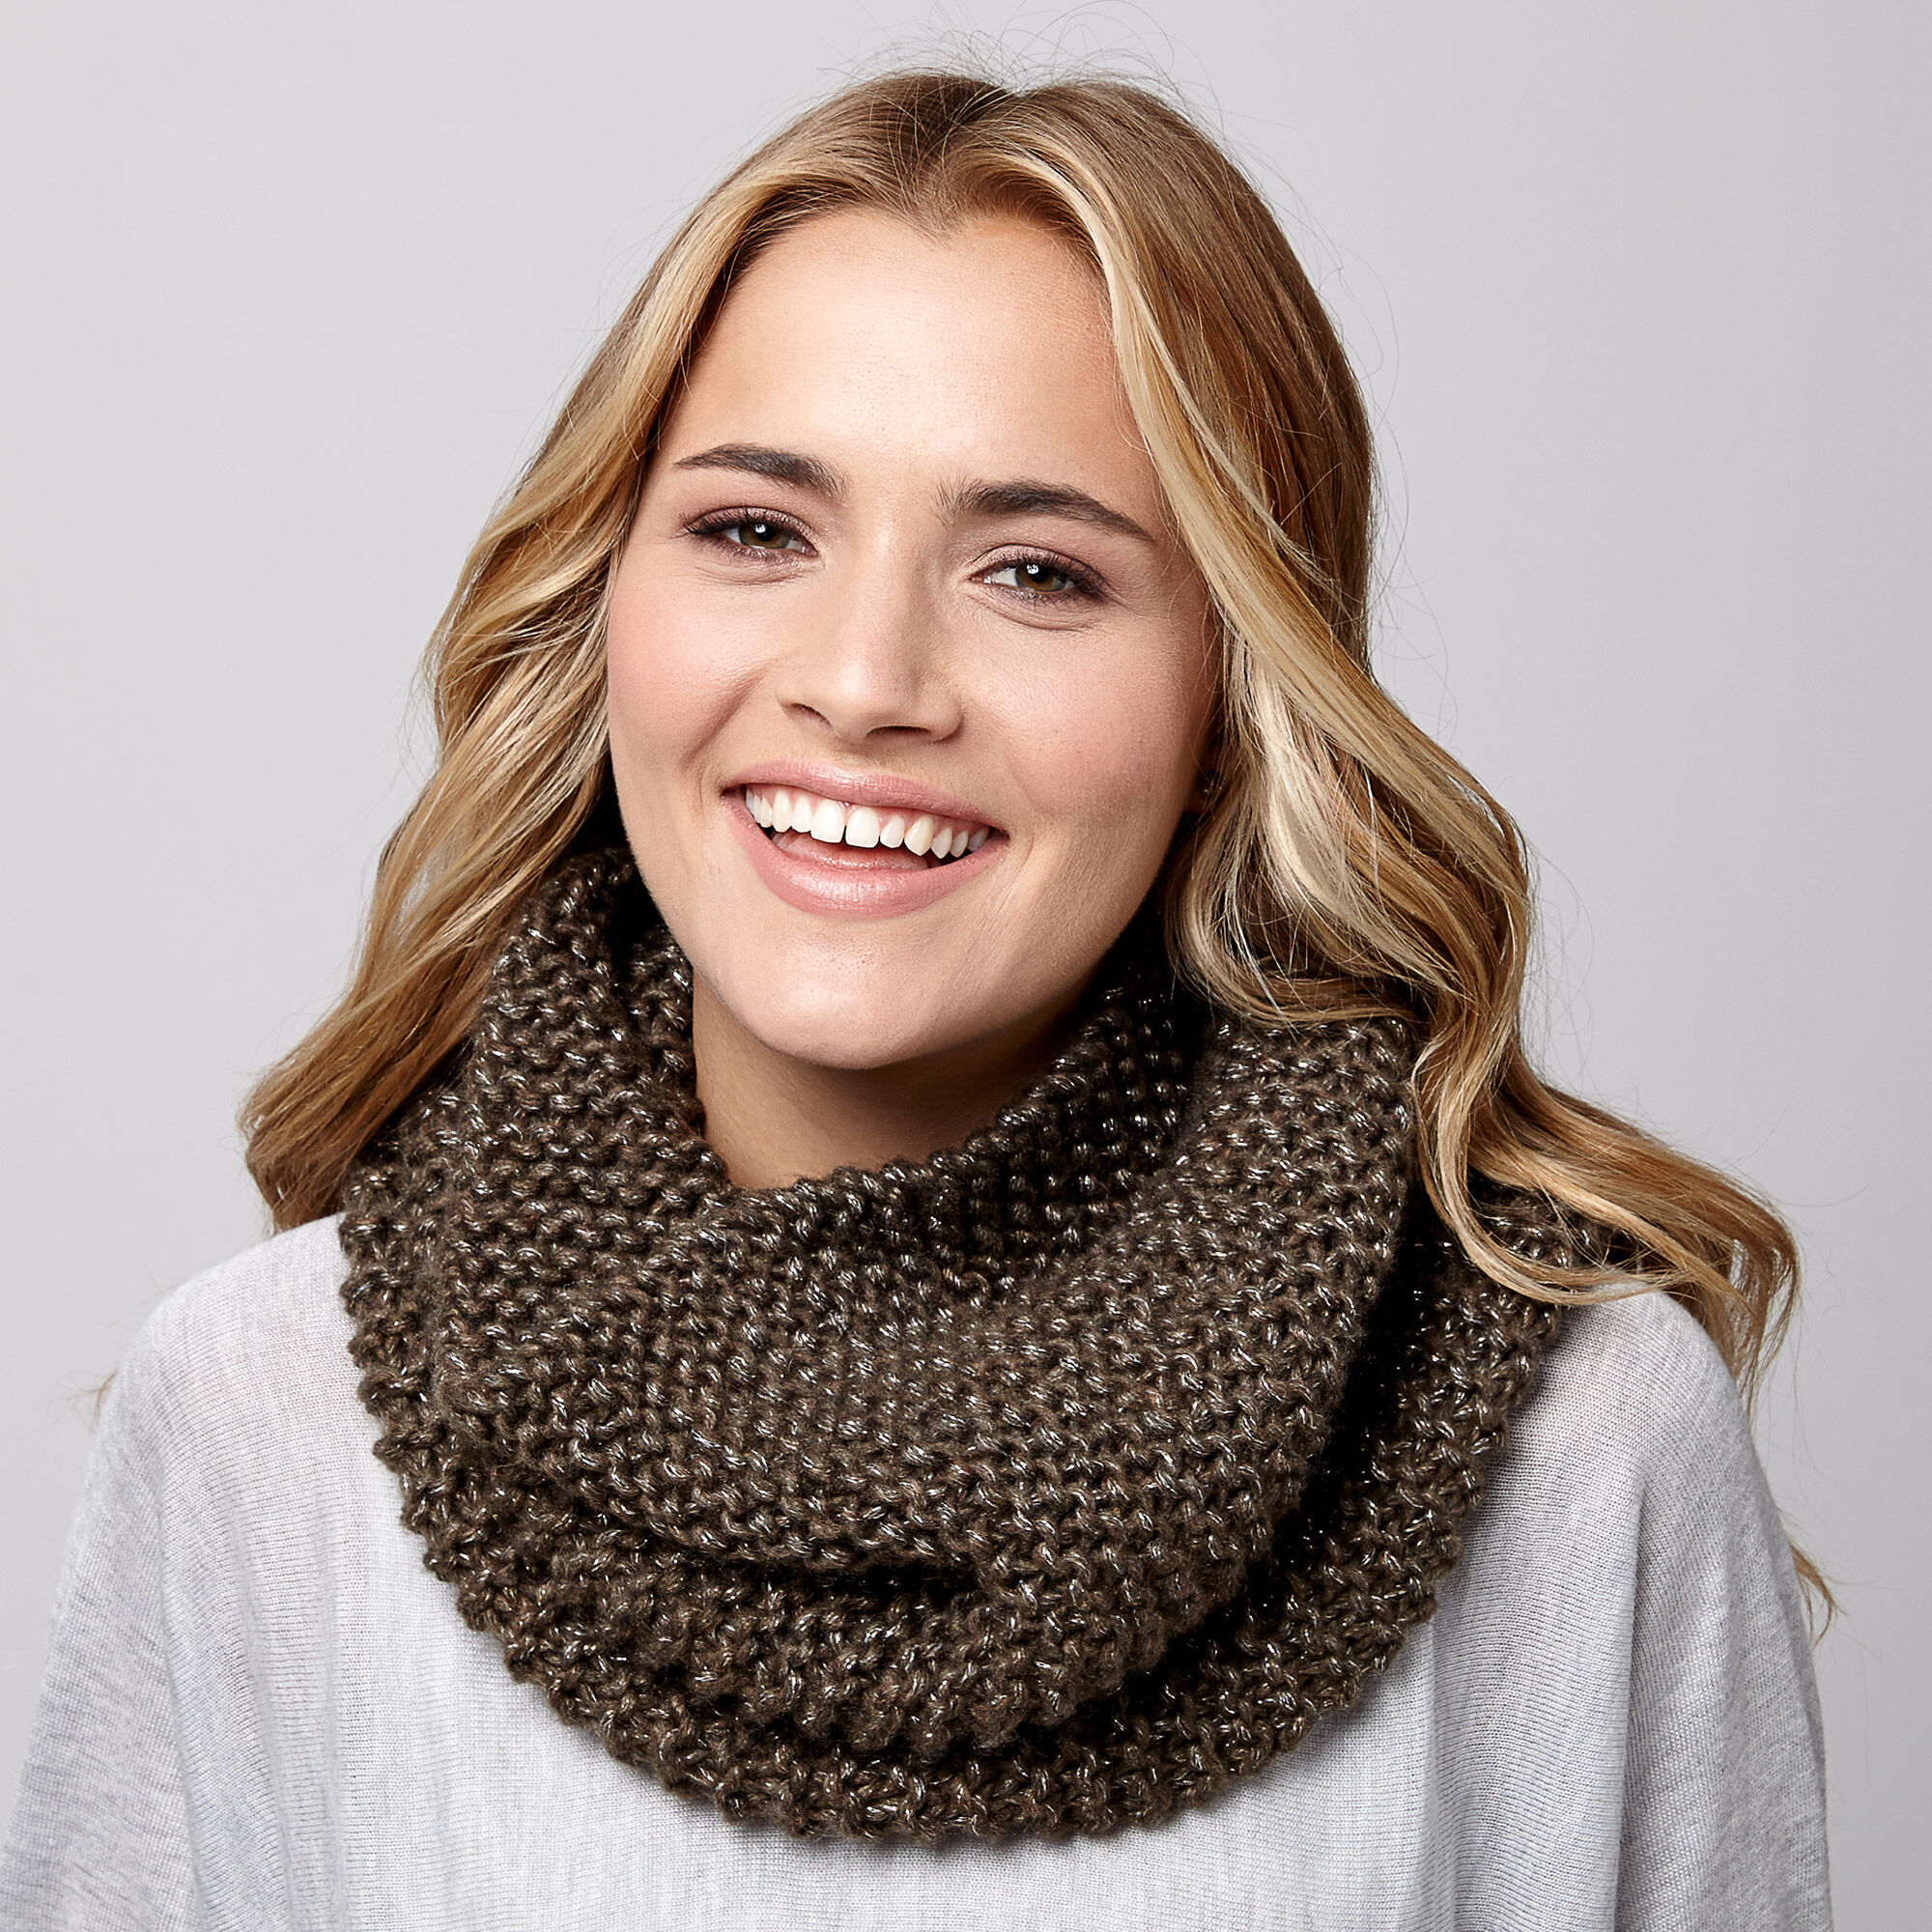 Bernat Shimmer Cowl in easy garter stitch knitting.